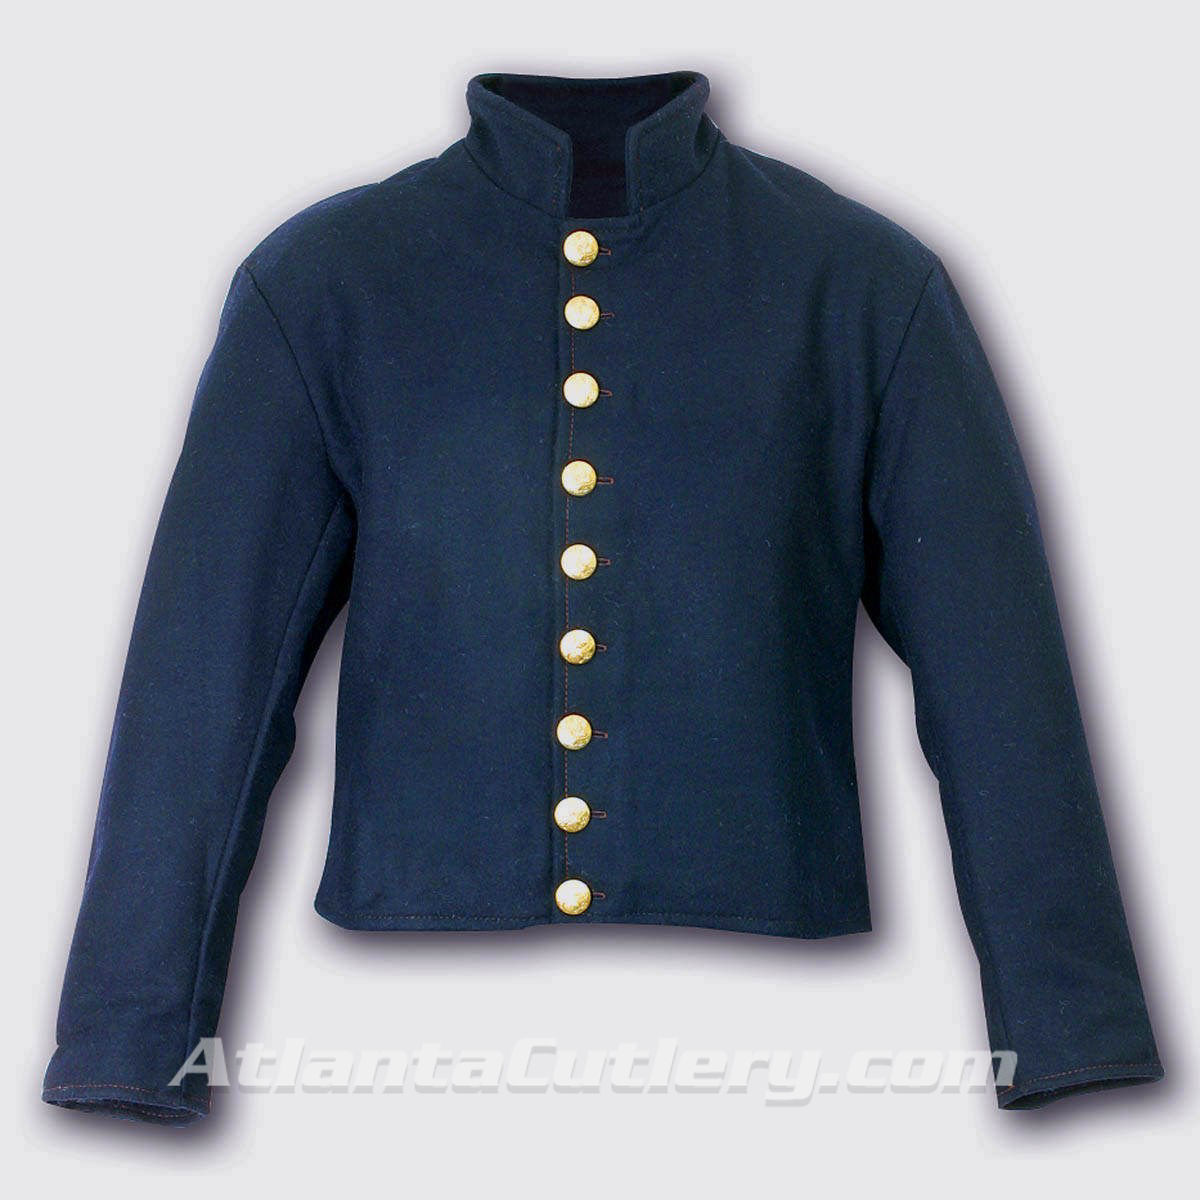 Union Officer's Round-About  Civil War Jacket